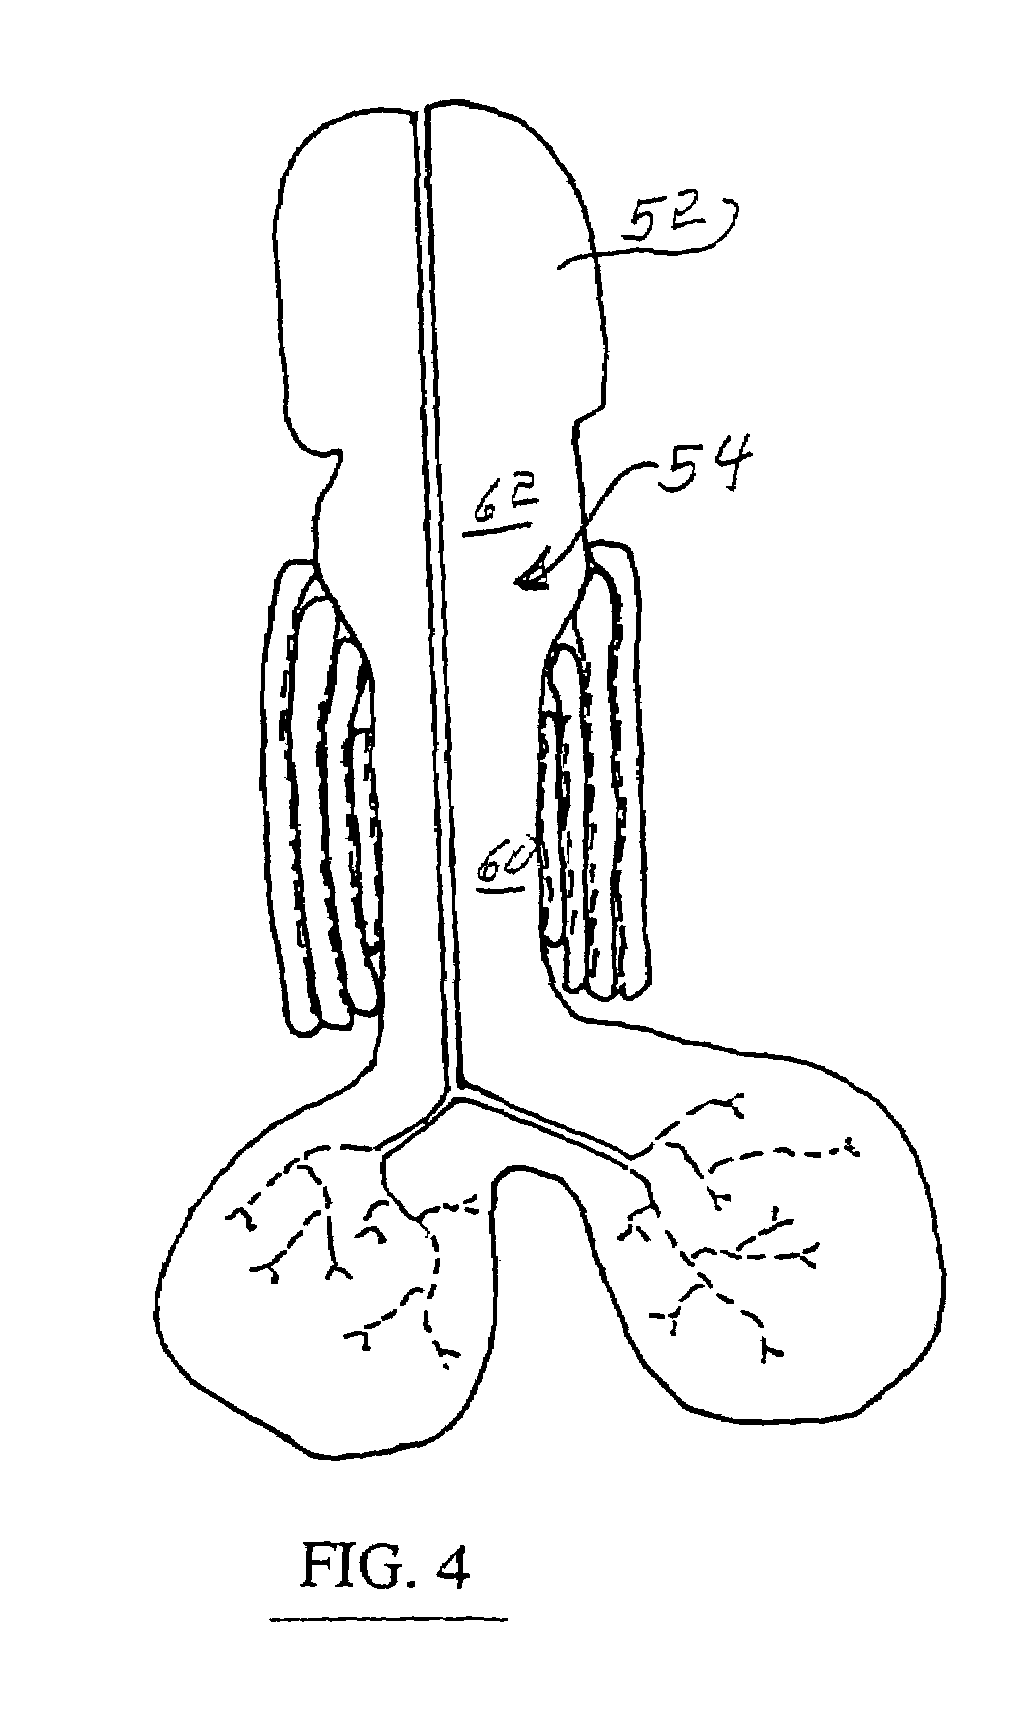 Circulatory system coloring pages